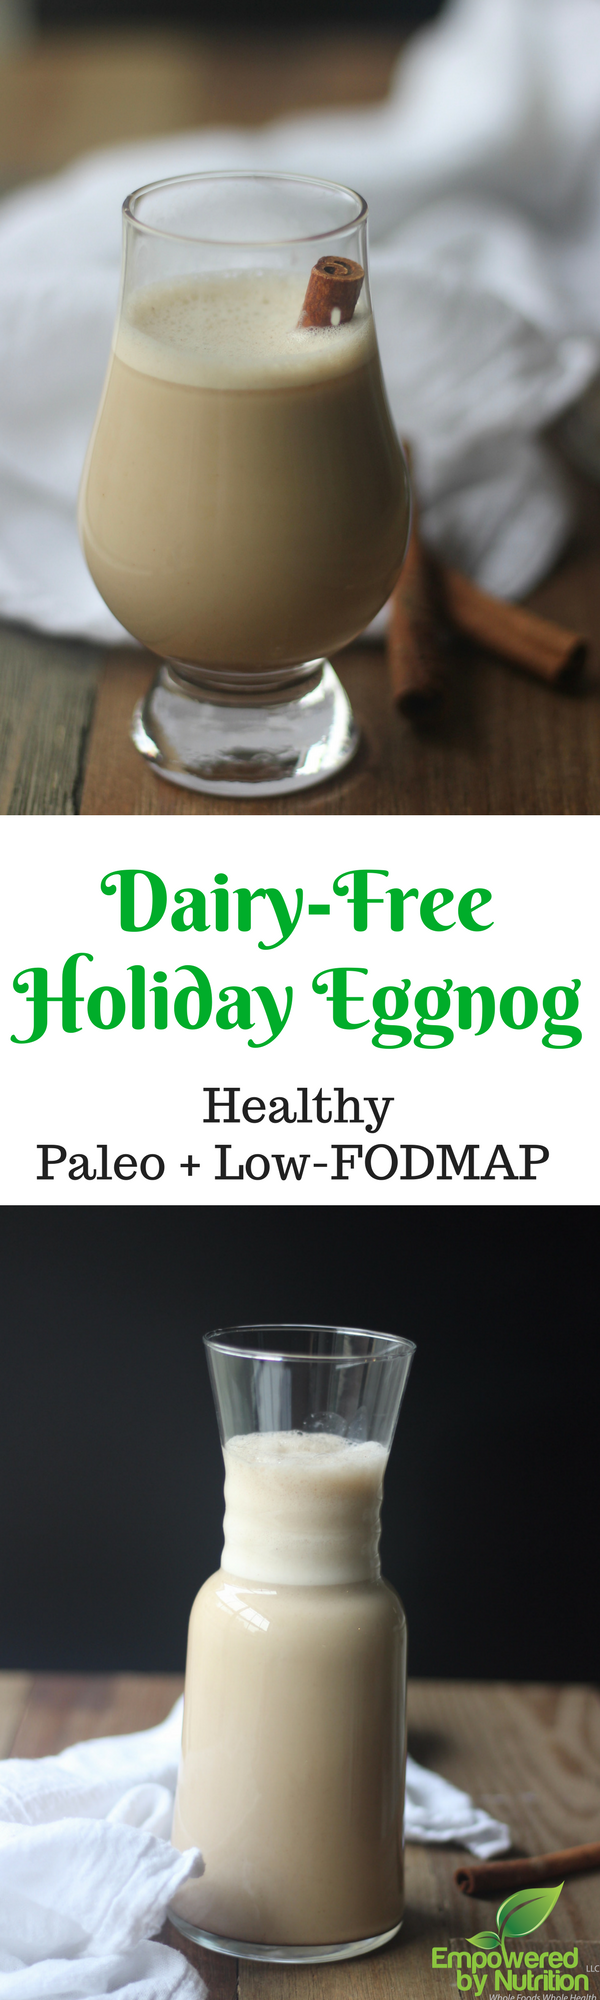 Paleo dairy-free lactose-free low-FODMAP holiday Eggnog drinks